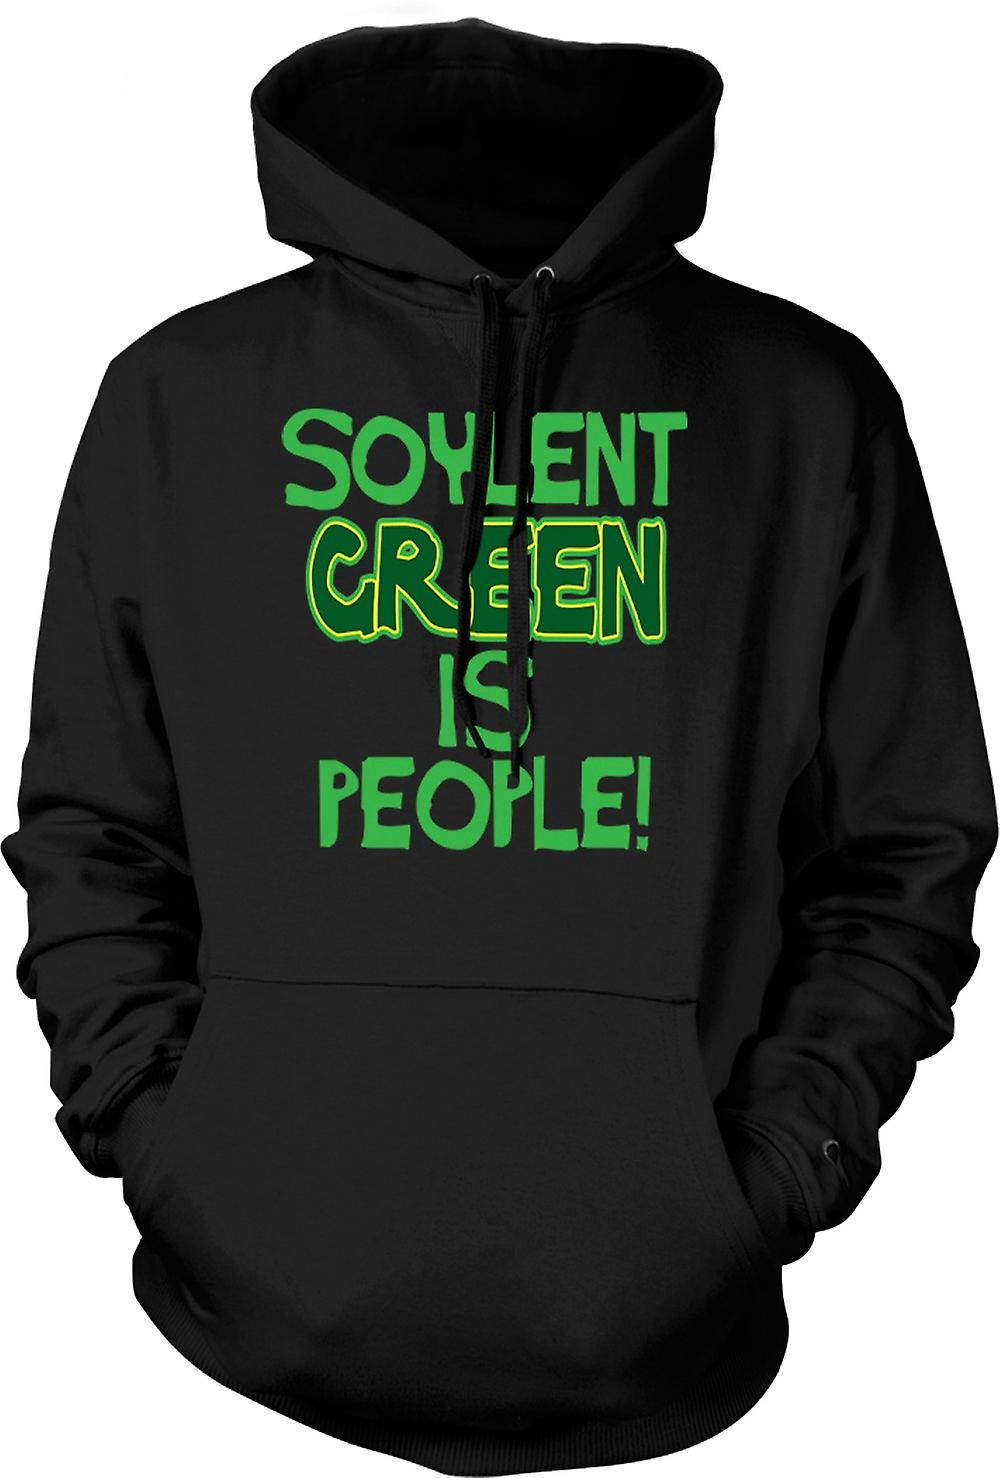 Kids Hoodie - Soylent Green Is People - Funny